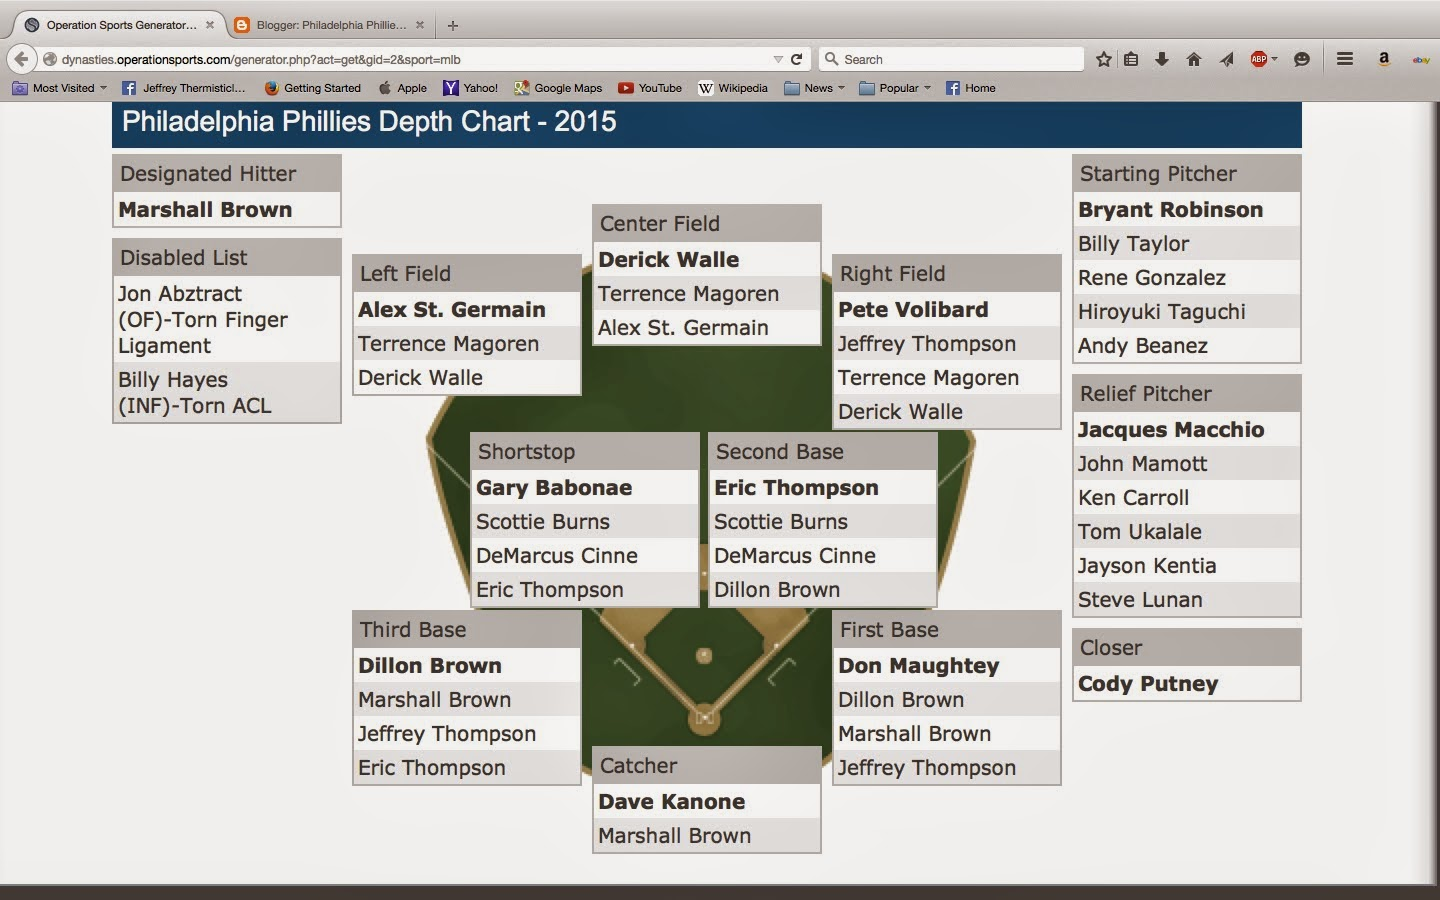 This Years Opening Day Depth Chart For The Philadelphia Phillies Note Marshall Brown And His Brother Dillon Are Platooning 3b Role